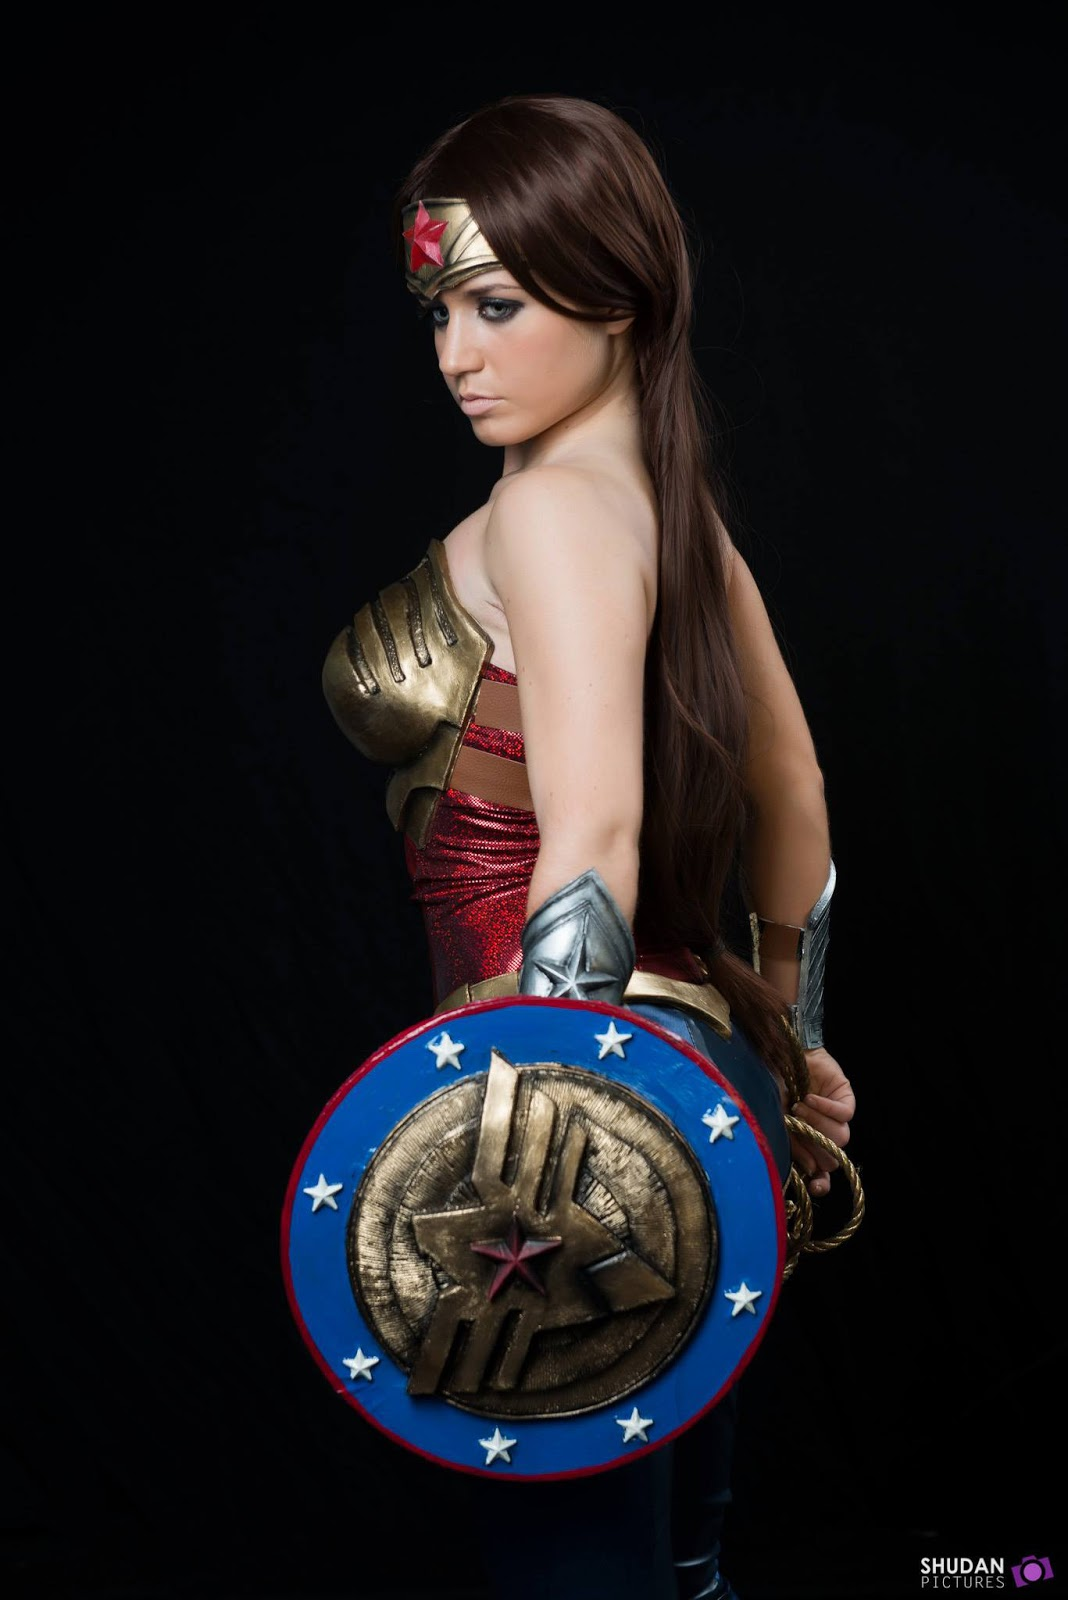 Nude Cosplay Babes The Hottest Wonder Woman Cosplay-5879